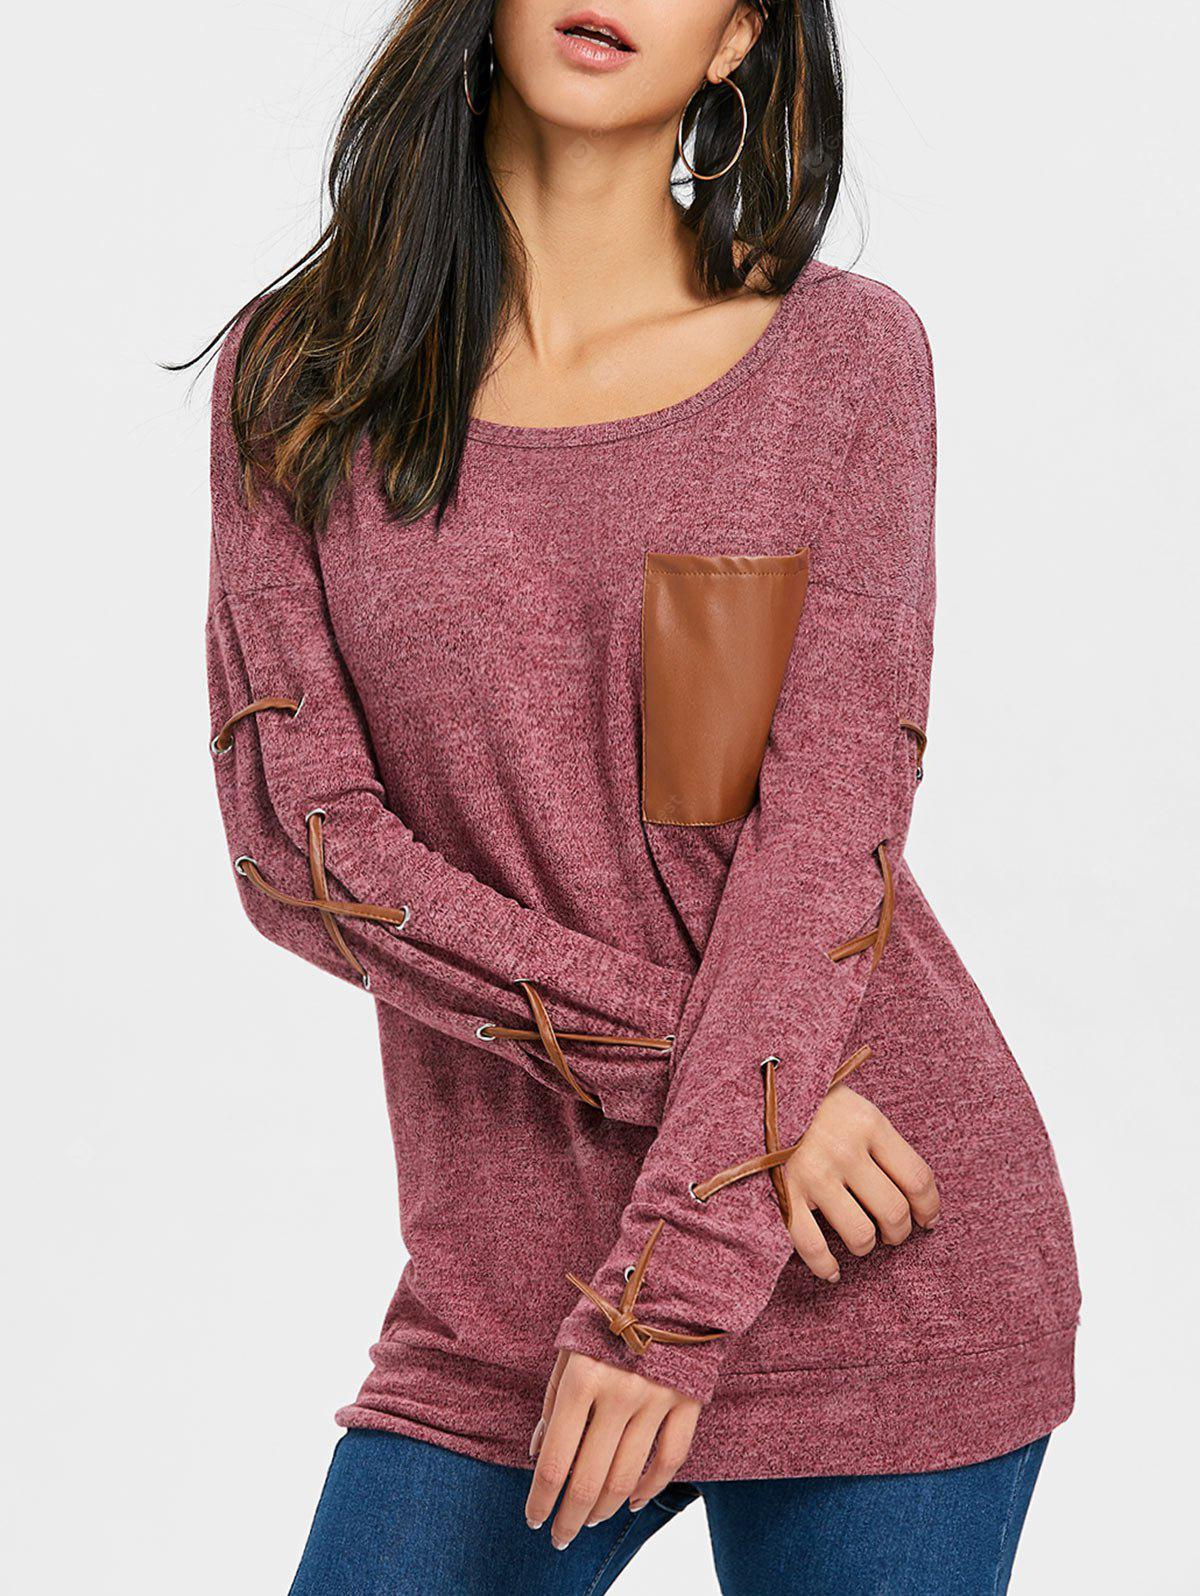 Pocket Heathered Lace Up Sleeve Top